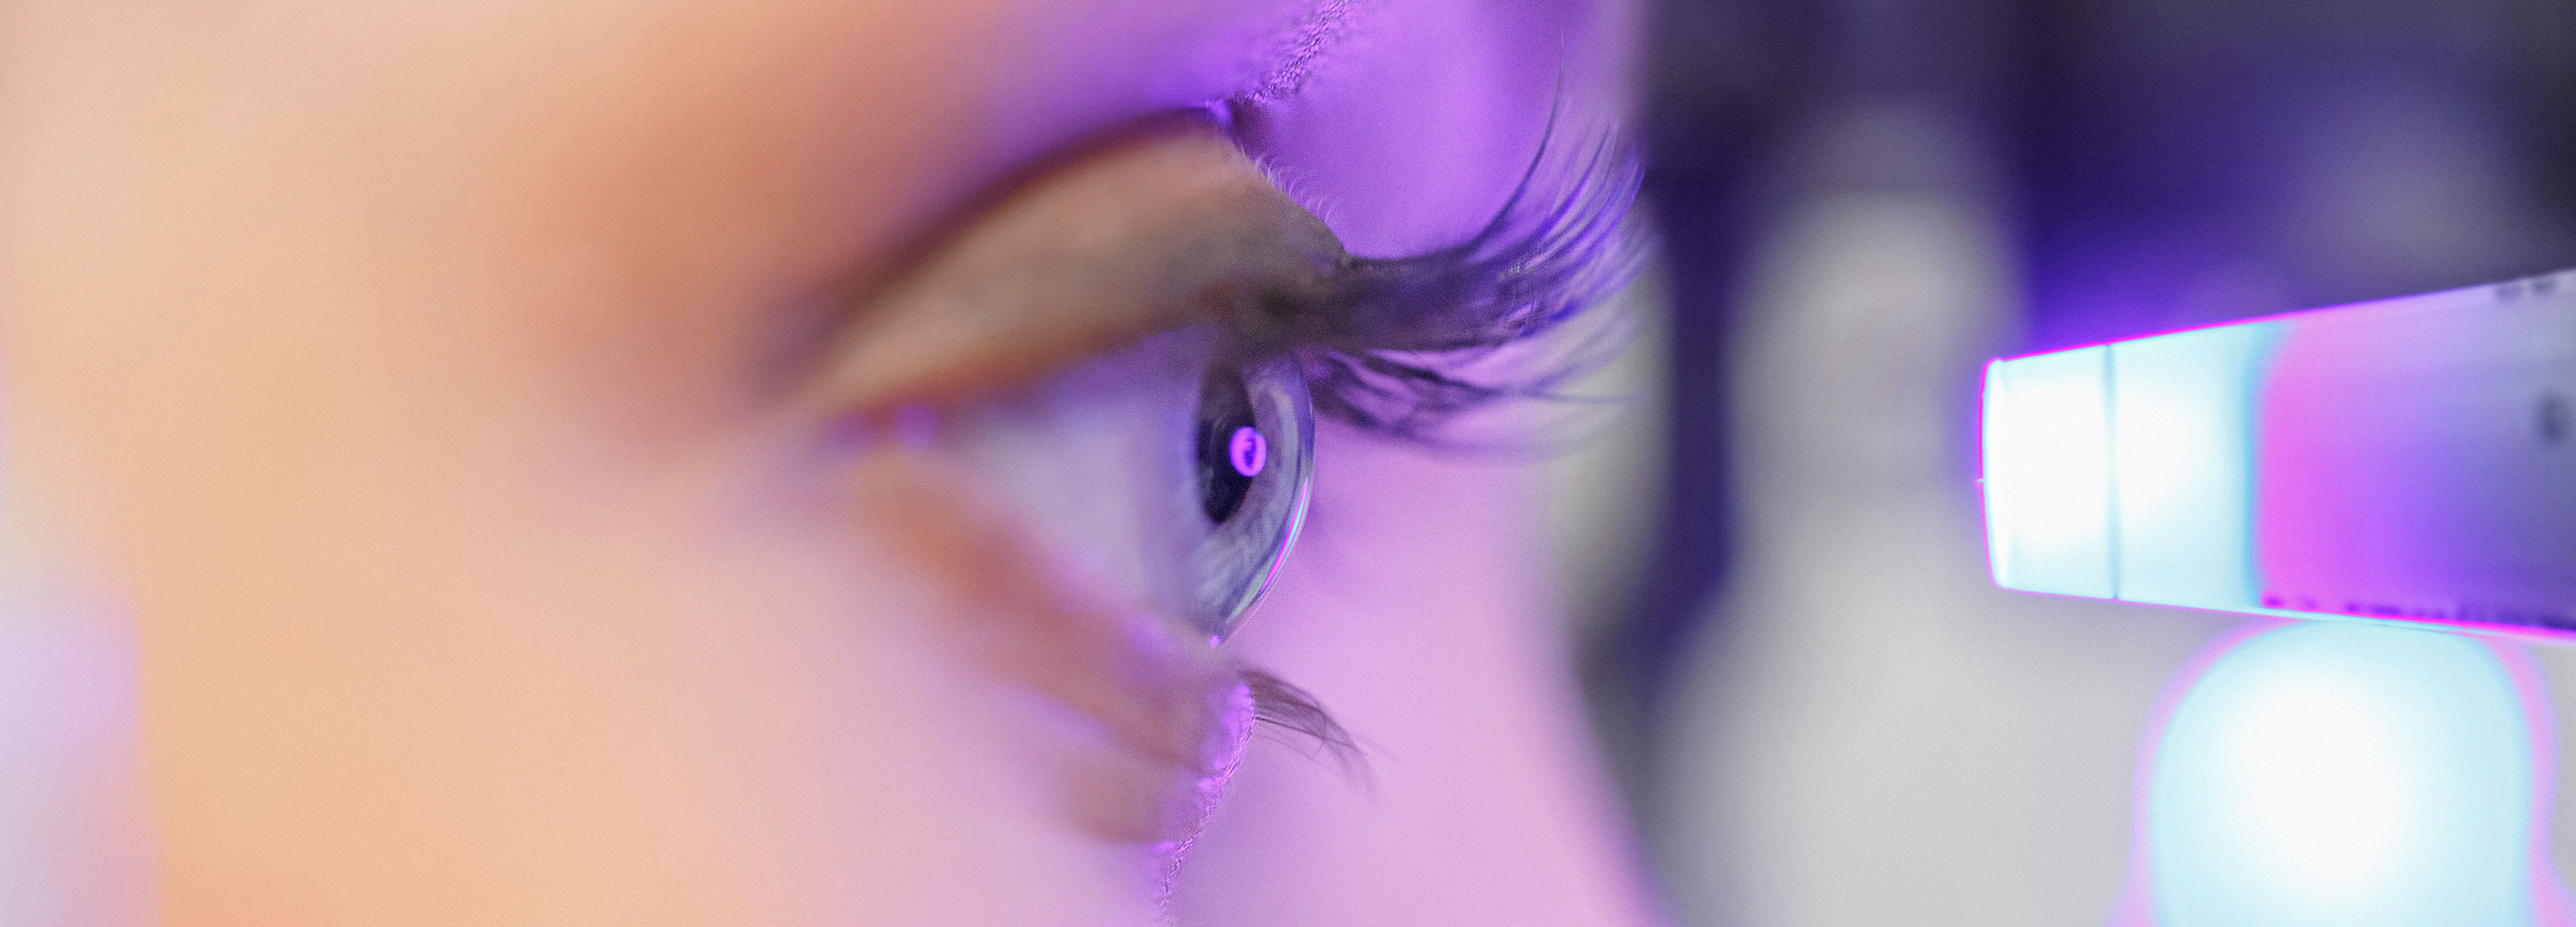 Close up of a woman's eye looking into a eye scanner